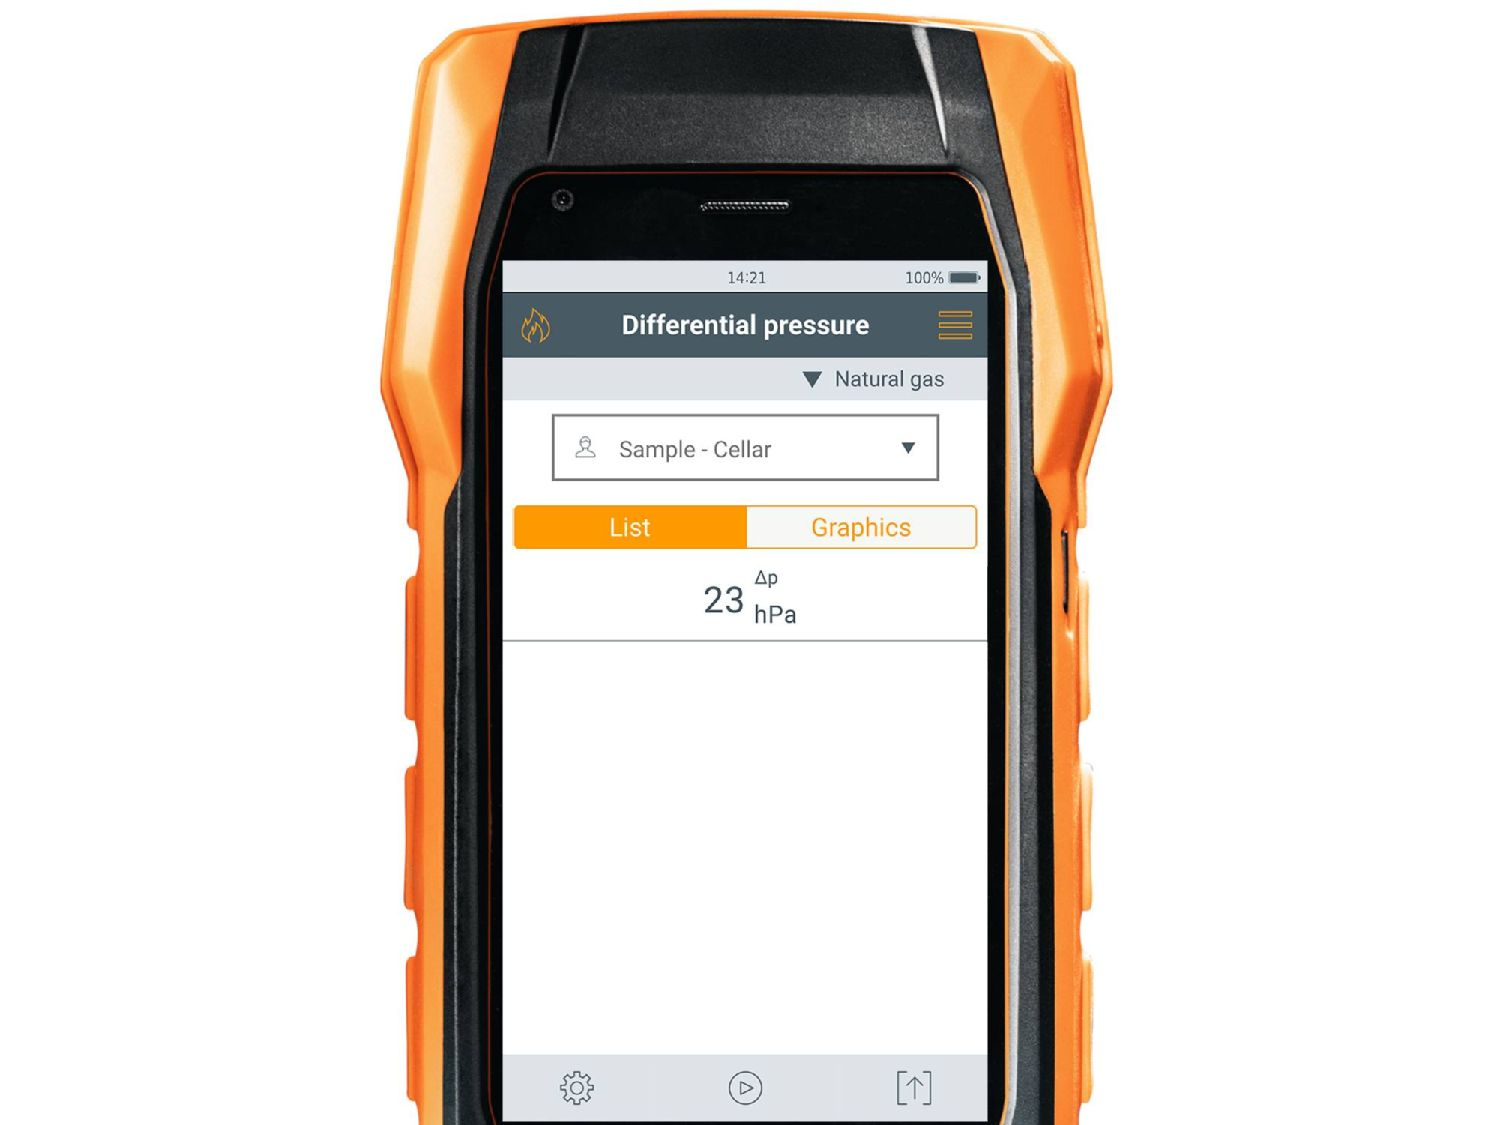 testo 300 flue gas analyzer differential pressure measurement